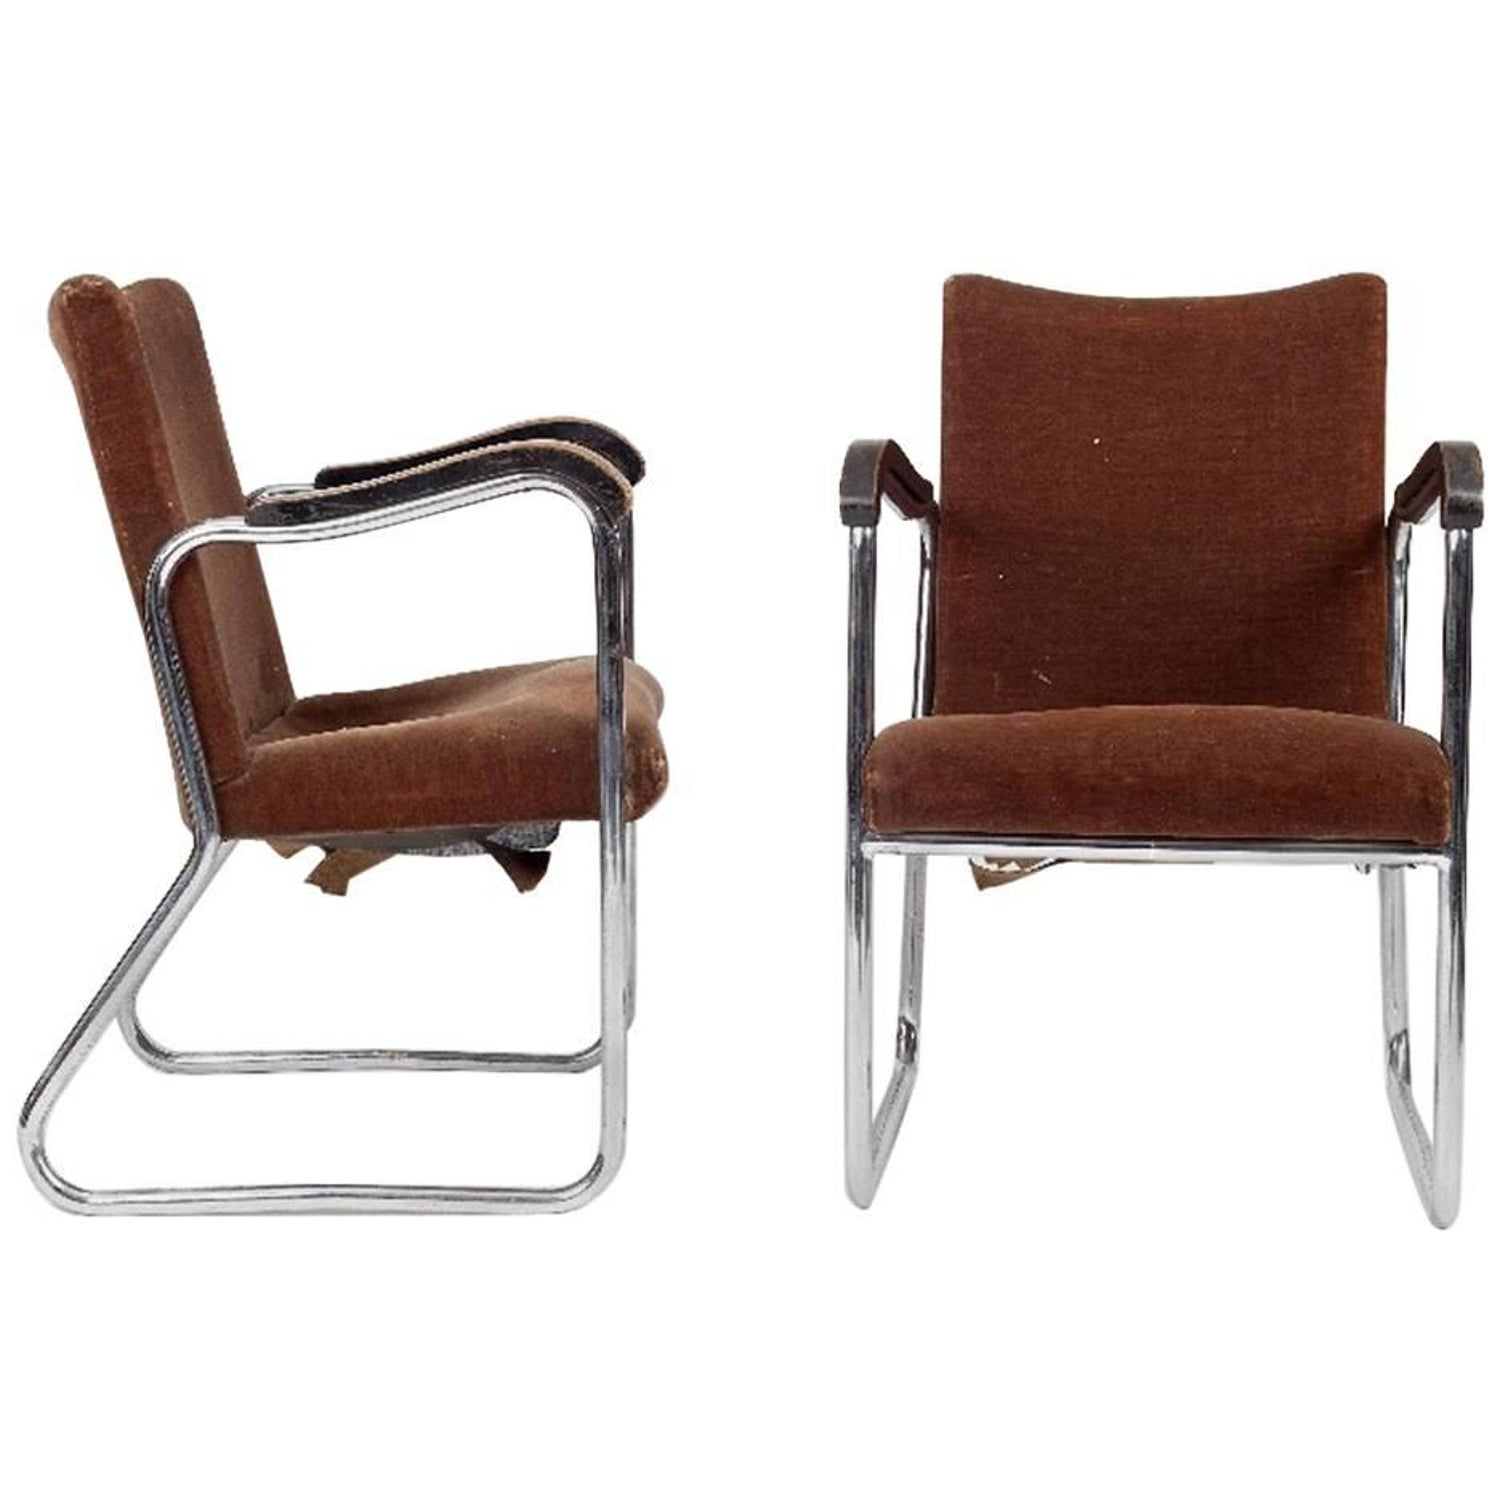 Bauhaus tubular steel lounge chair at 1stdibs - Thonet A Pair Of 1930s Tubular Steel Armchairs With Ebonized Armrests For Sale At 1stdibs